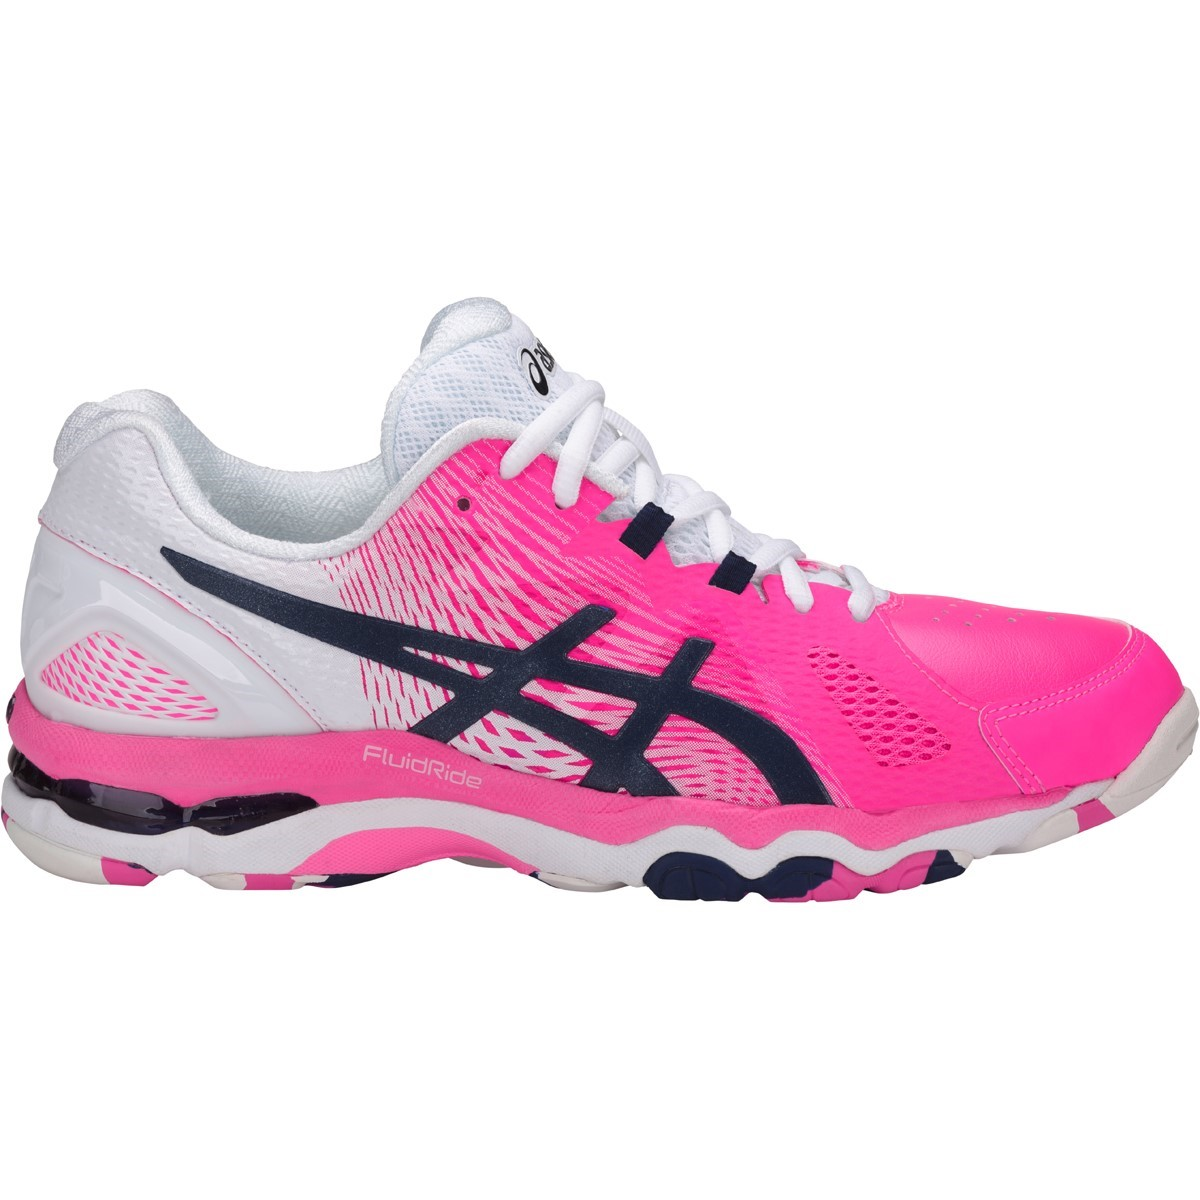 a20f77b30d8 Asics Gel Netburner Super 8 - Womens Netball Shoes - Hot Pink/Indigo Blue/